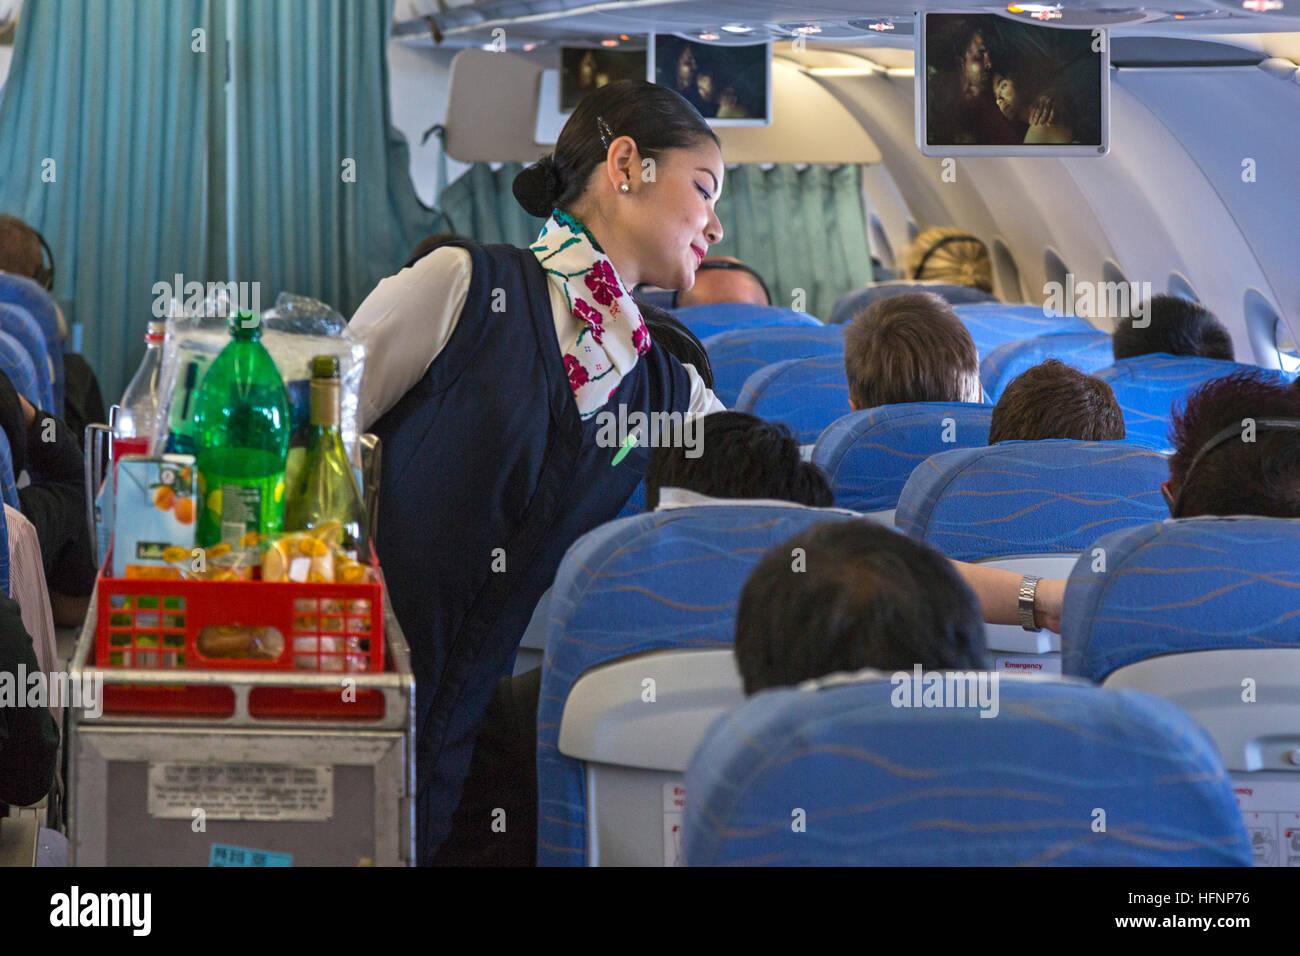 Cabin crew and passengers on Philippine Airlines flight from Manila - Stock Image